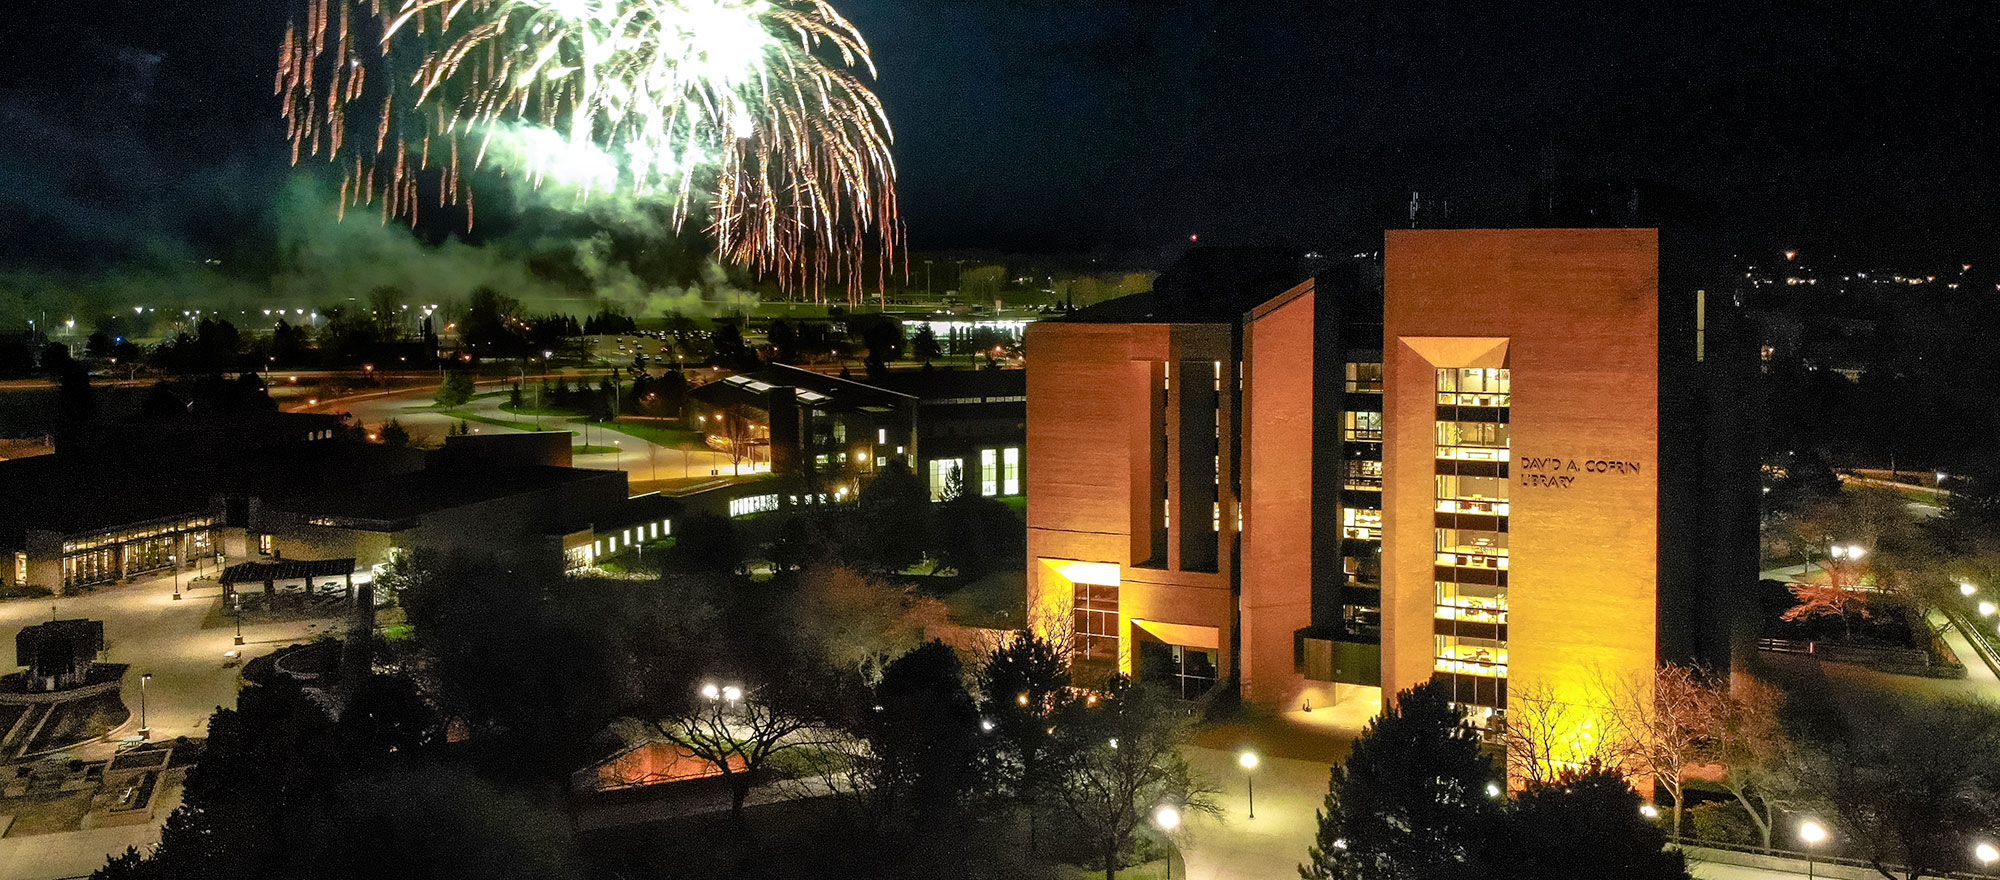 Fireworks over Library